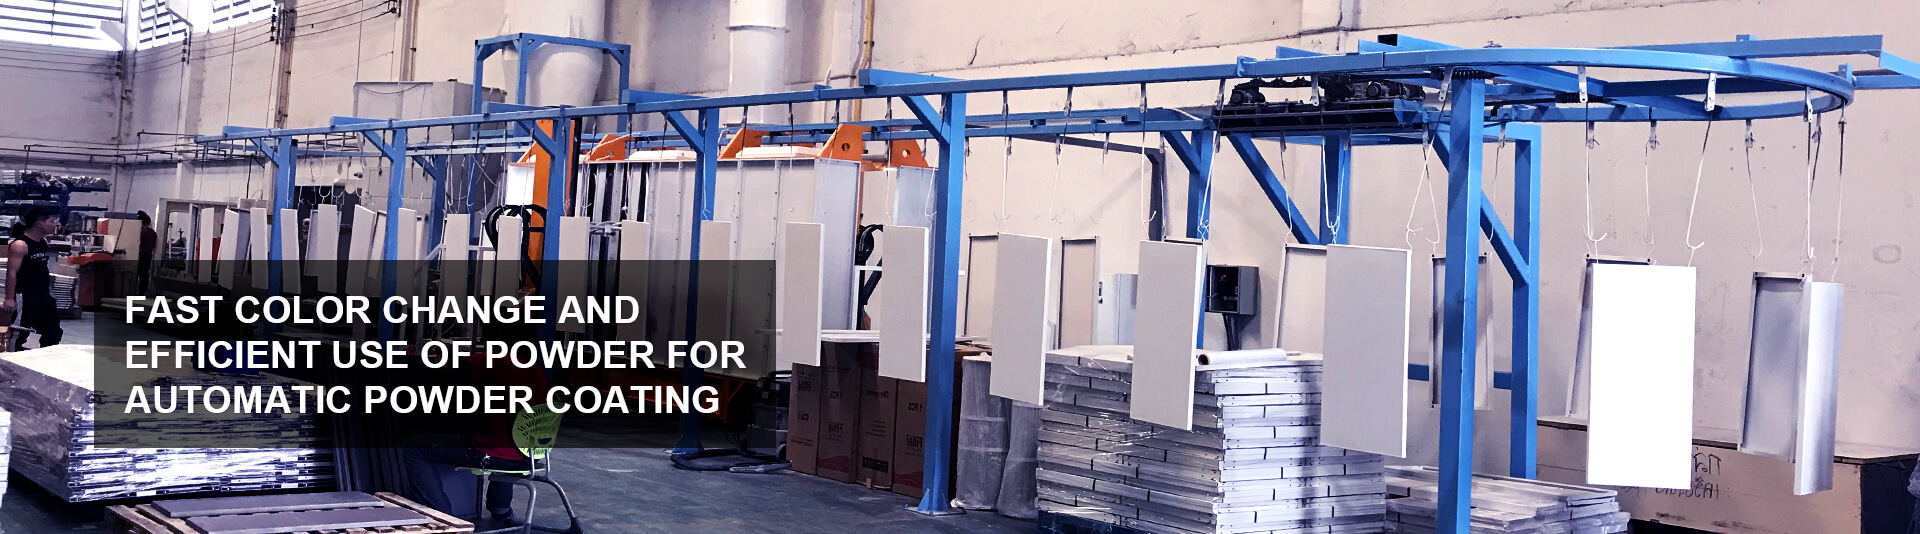 How To Use Powder Coating Equipment